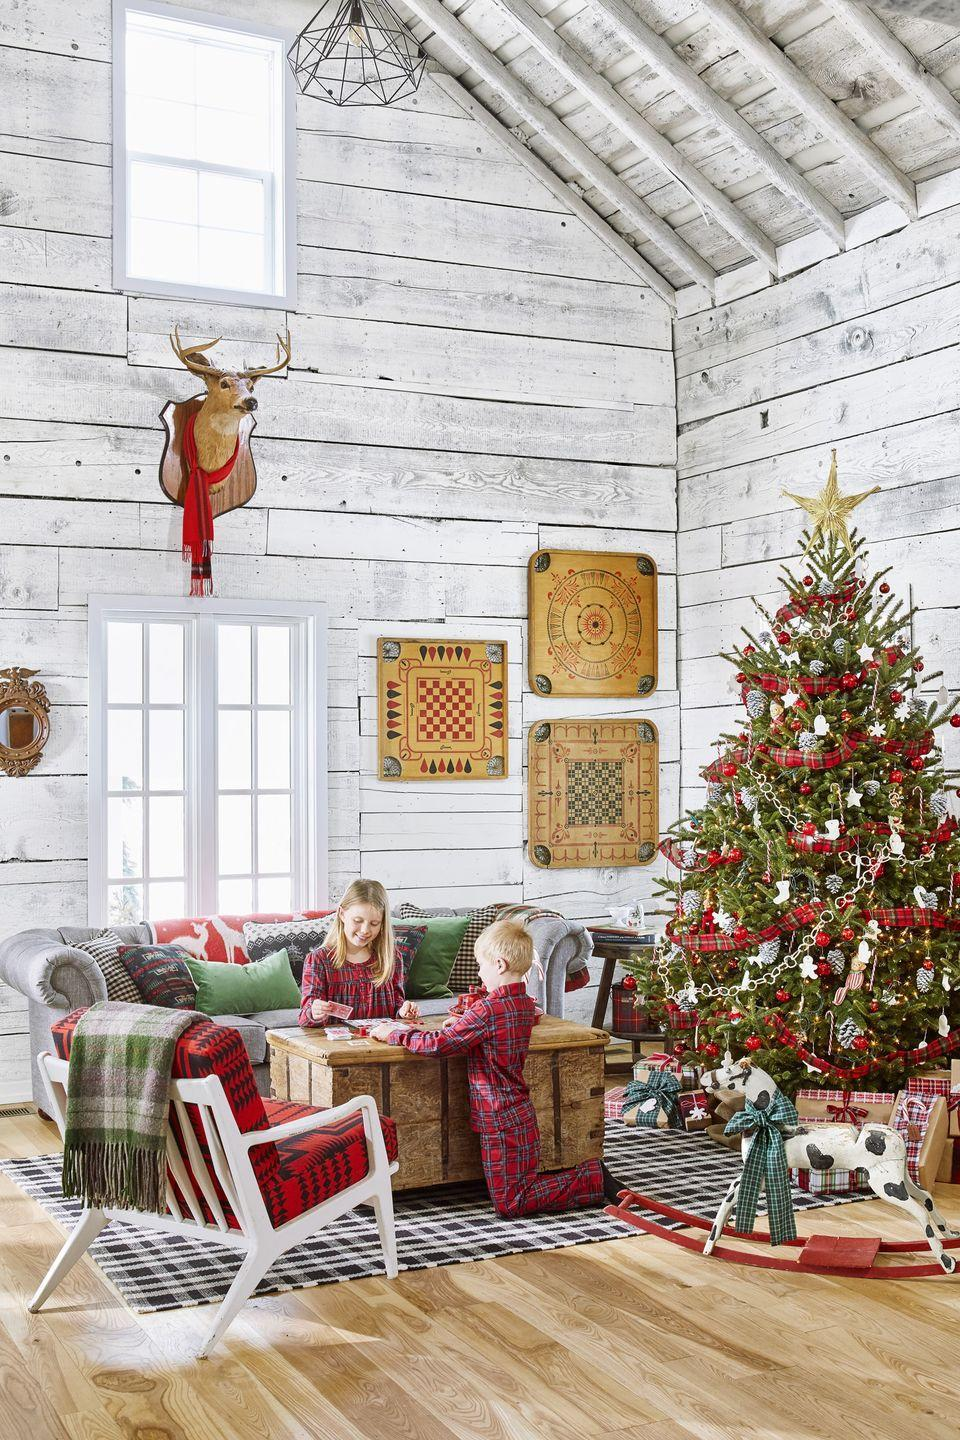 """<p>Red plaid items, which are available all year round, are conveniently completely Christmas-appropriate. This room features the <a href=""""https://www.countryliving.com/diy-crafts/g658/christmas-garlands-1208/"""" rel=""""nofollow noopener"""" target=""""_blank"""" data-ylk=""""slk:pattern in the garland"""" class=""""link rapid-noclick-resp"""">pattern in the garland</a>, <a href=""""https://www.countryliving.com/diy-crafts/tips/g645/crafty-christmas-presents-ideas/"""" rel=""""nofollow noopener"""" target=""""_blank"""" data-ylk=""""slk:on the presents"""" class=""""link rapid-noclick-resp"""">on the presents</a>, and even on the <a href=""""https://www.countryliving.com/life/kids-pets/g5033/kids-christmas-pajamas/"""" rel=""""nofollow noopener"""" target=""""_blank"""" data-ylk=""""slk:kids' pajamas"""" class=""""link rapid-noclick-resp"""">kids' pajamas</a>! </p><p><a class=""""link rapid-noclick-resp"""" href=""""https://www.amazon.com/PajamaGram-Family-Christmas-Pajamas-Set/dp/B0062YYKCW?tag=syn-yahoo-20&ascsubtag=%5Bartid%7C10050.g.1247%5Bsrc%7Cyahoo-us"""" rel=""""nofollow noopener"""" target=""""_blank"""" data-ylk=""""slk:SHOP PLAID PAJAMAS"""">SHOP PLAID PAJAMAS</a></p>"""